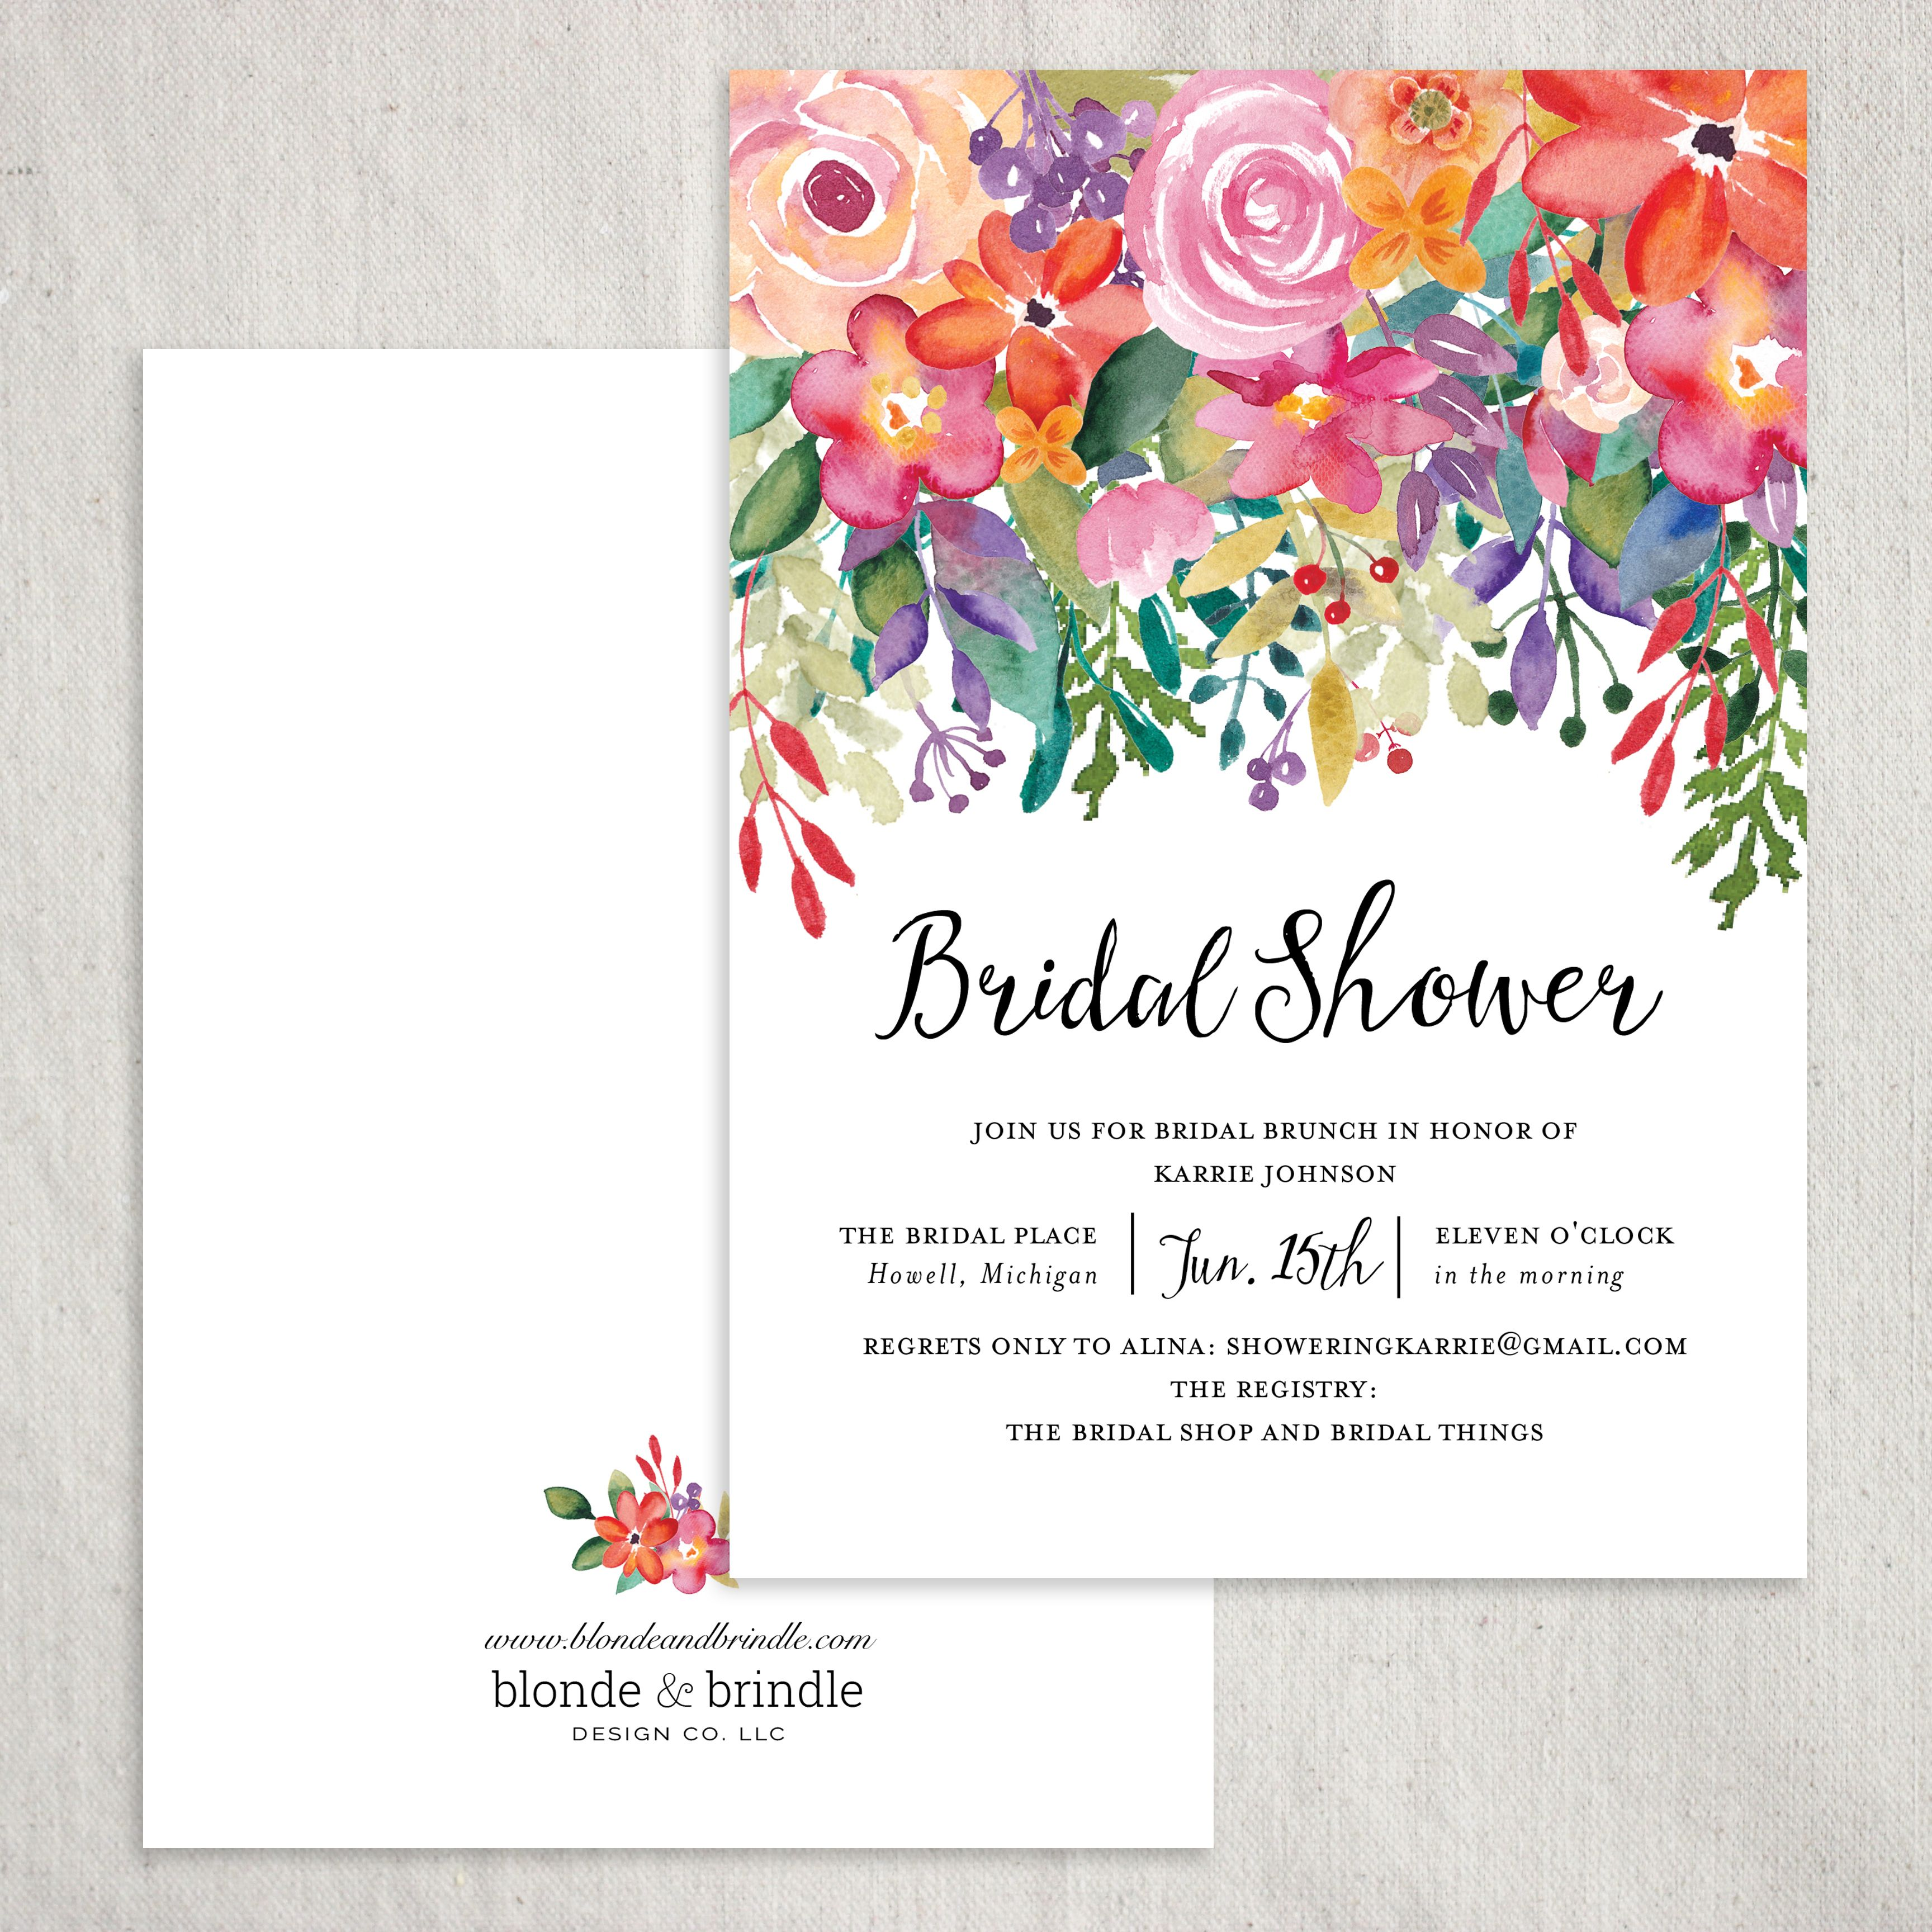 Absolutely Stunning Floral Bridal Shower Invitation! The